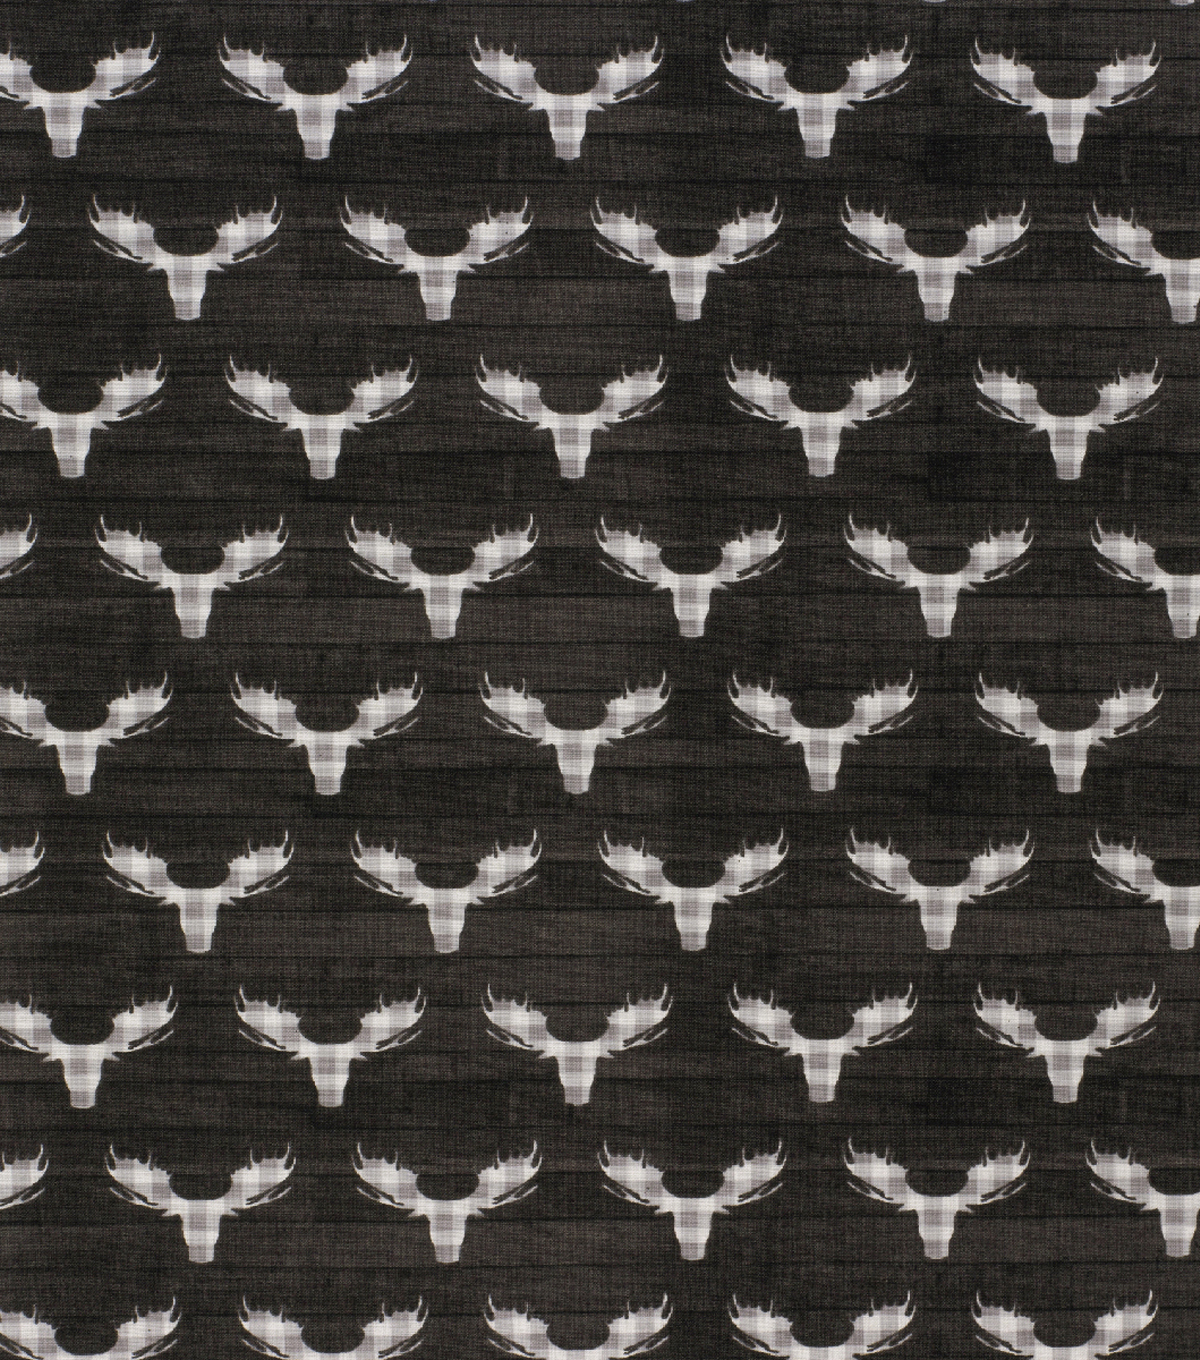 Novelty Cotton Fabric-Check Moose Head on Black Wood